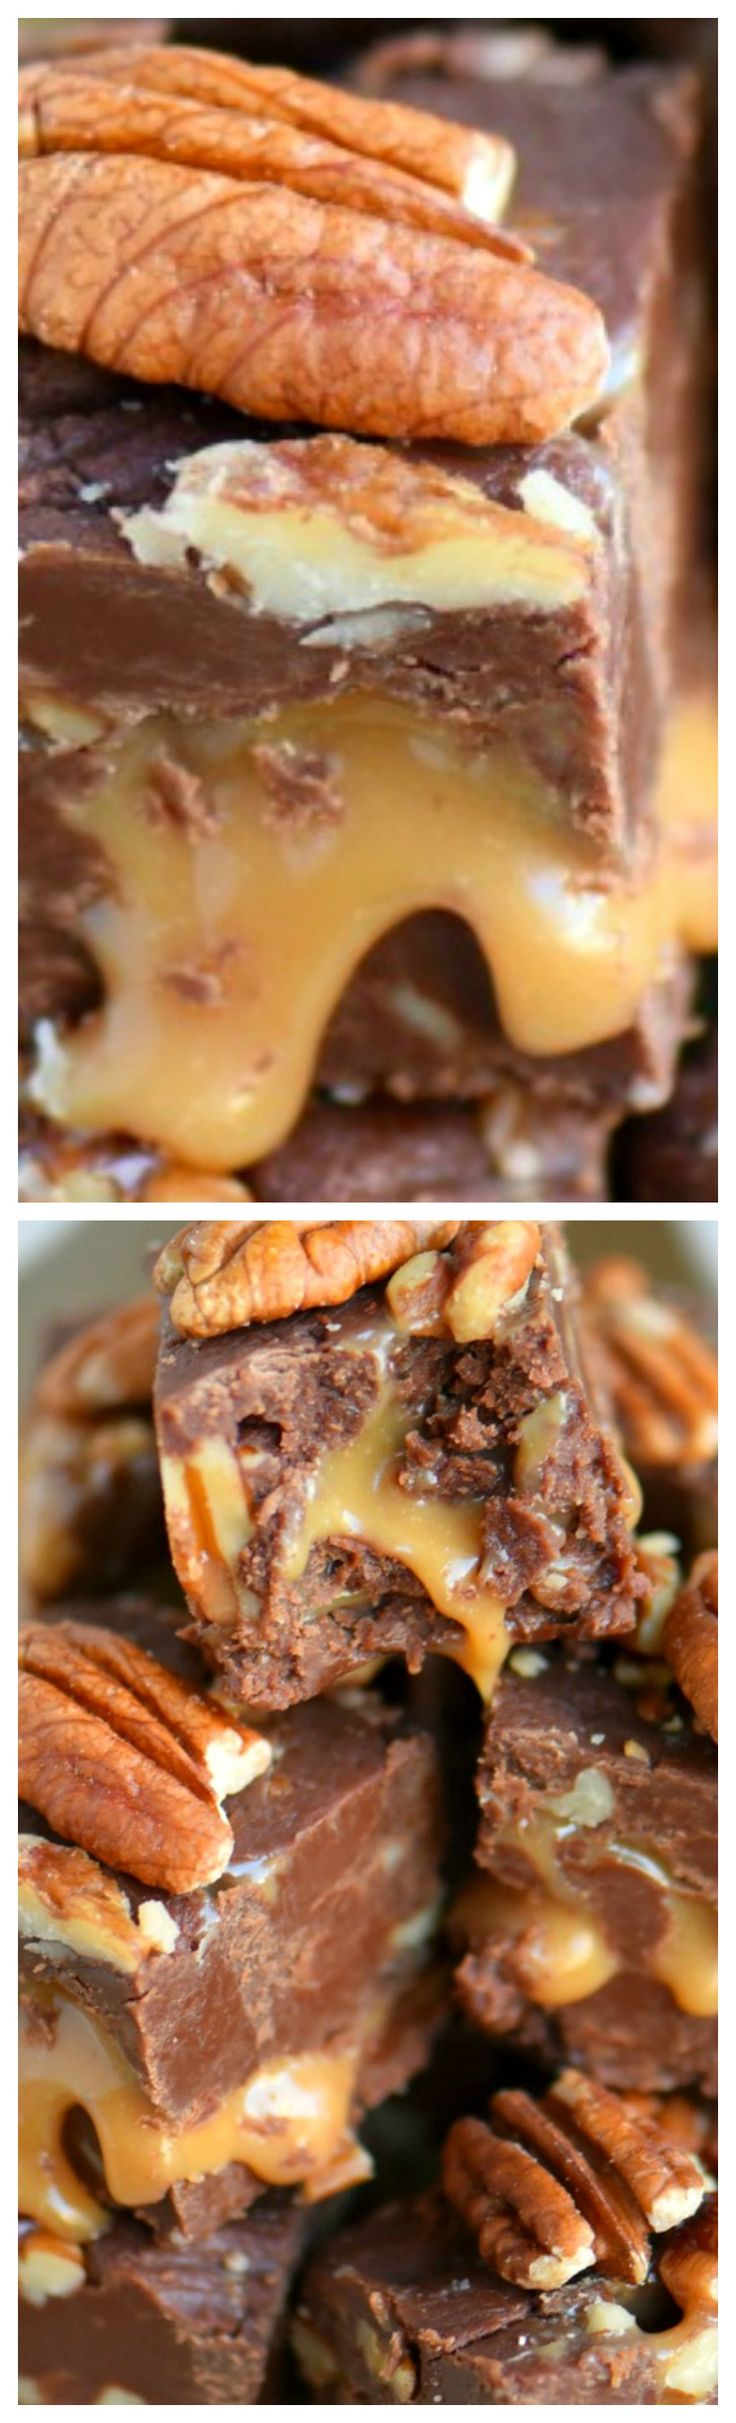 Triple Chocolate Turtle Fudge ~ Decadent and delicious... features three different types of chocolate and an ooey, gooey caramel center that is hard to resist! Great for gift giving and the holidays!